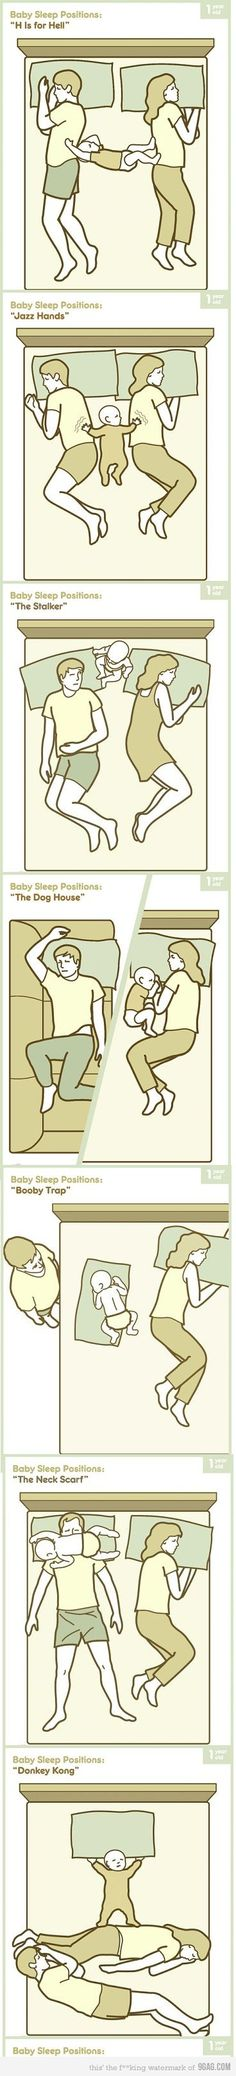 Baby sleep positions....when they are in Mommy and Daddy's bed!